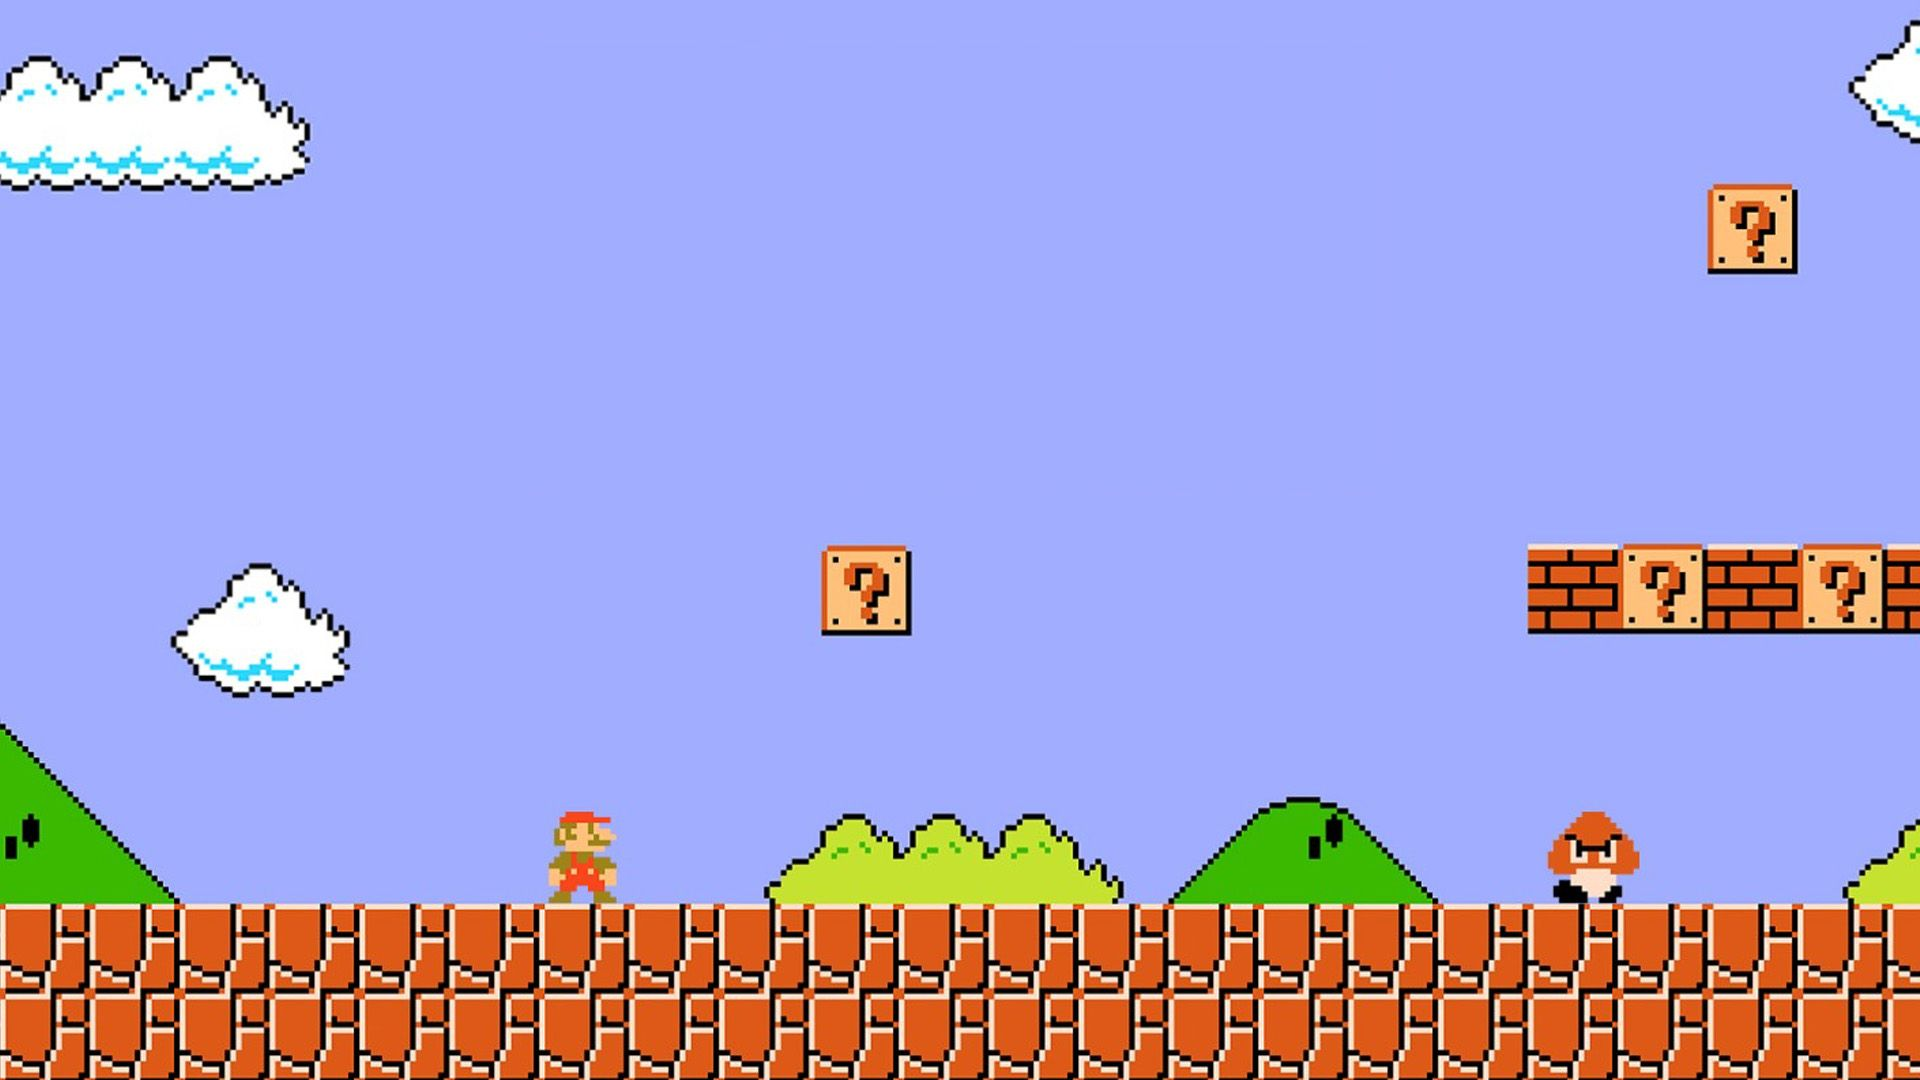 /10-best-nes-game-of-all-time-ranked-by-sales-d41n3708 feature image